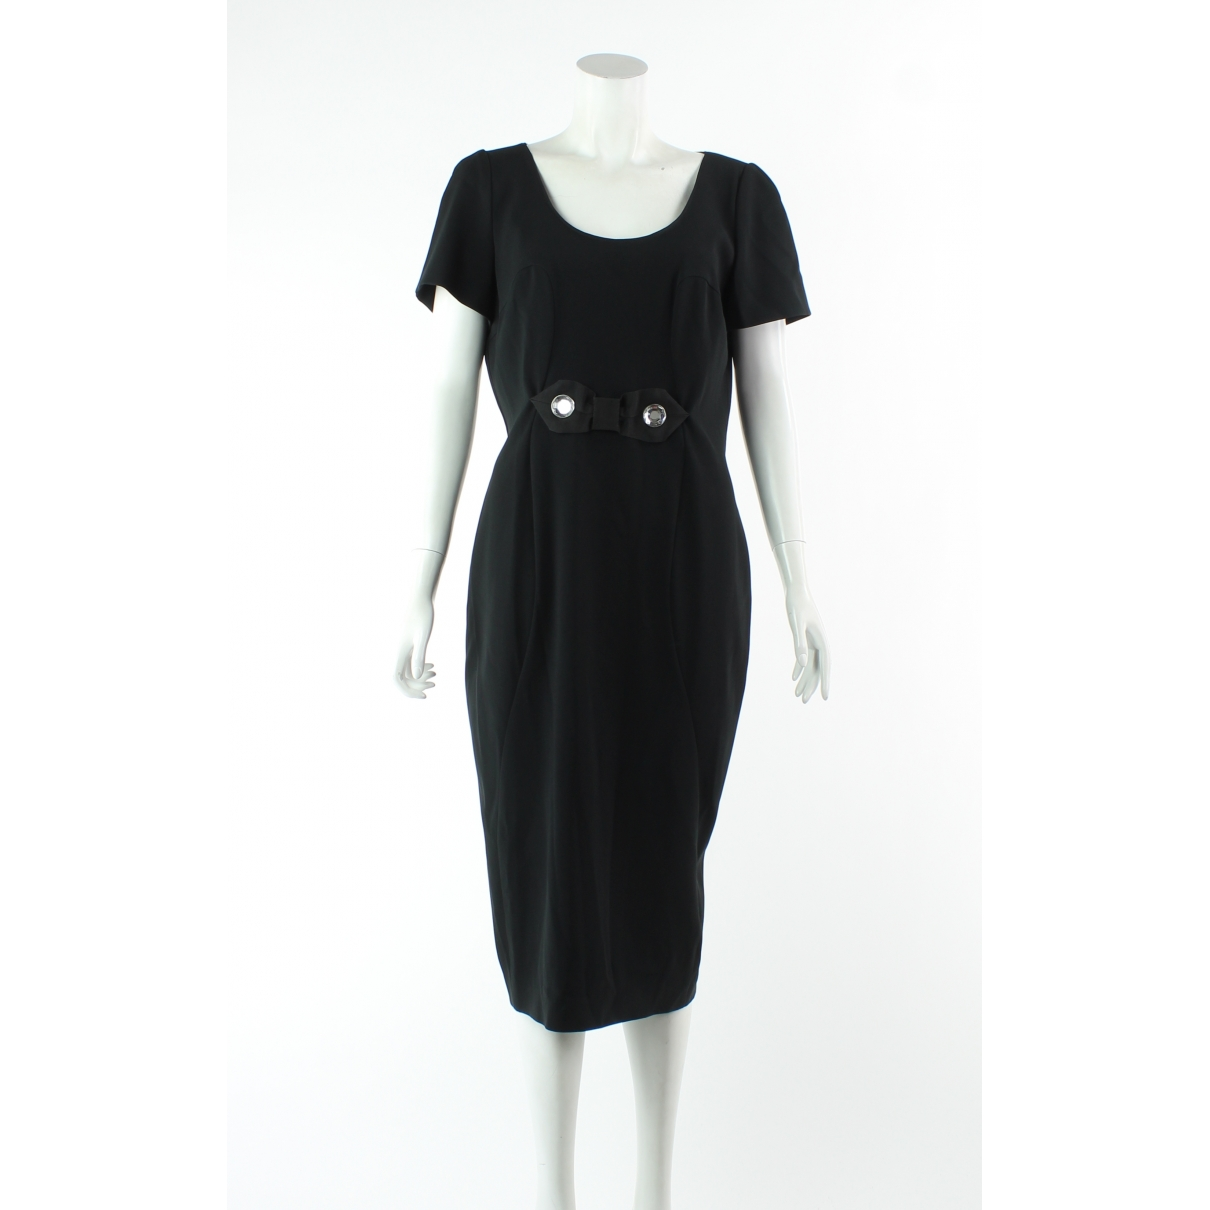 Moschino Cheap And Chic \N Black dress for Women 46 IT